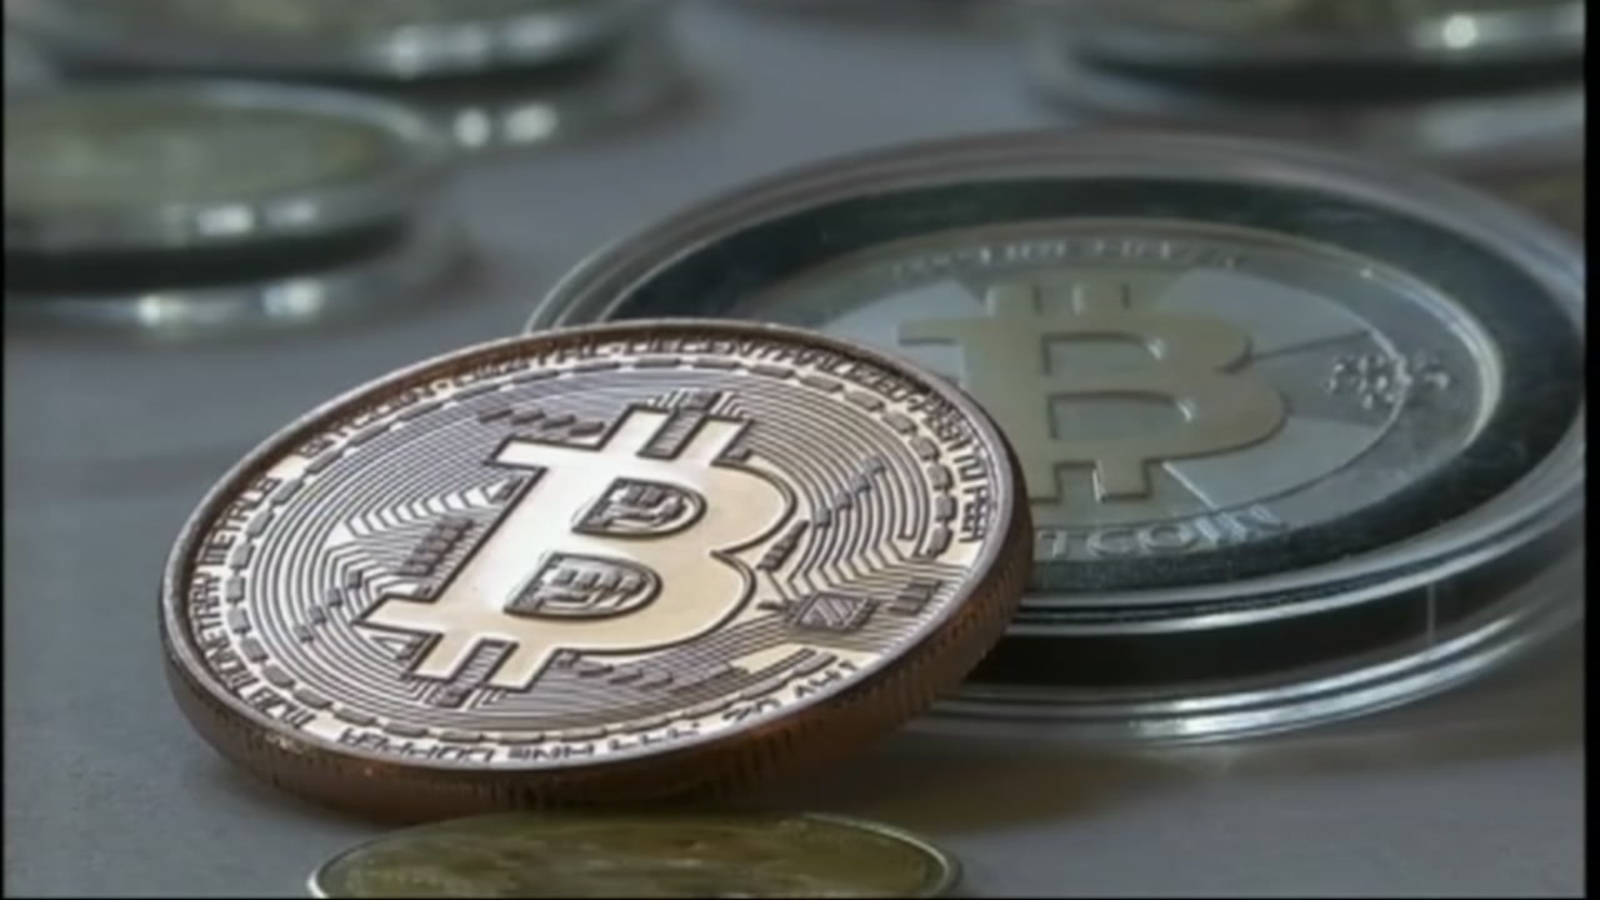 Bitcoin Scam: 'I'll tell your wife your secret '